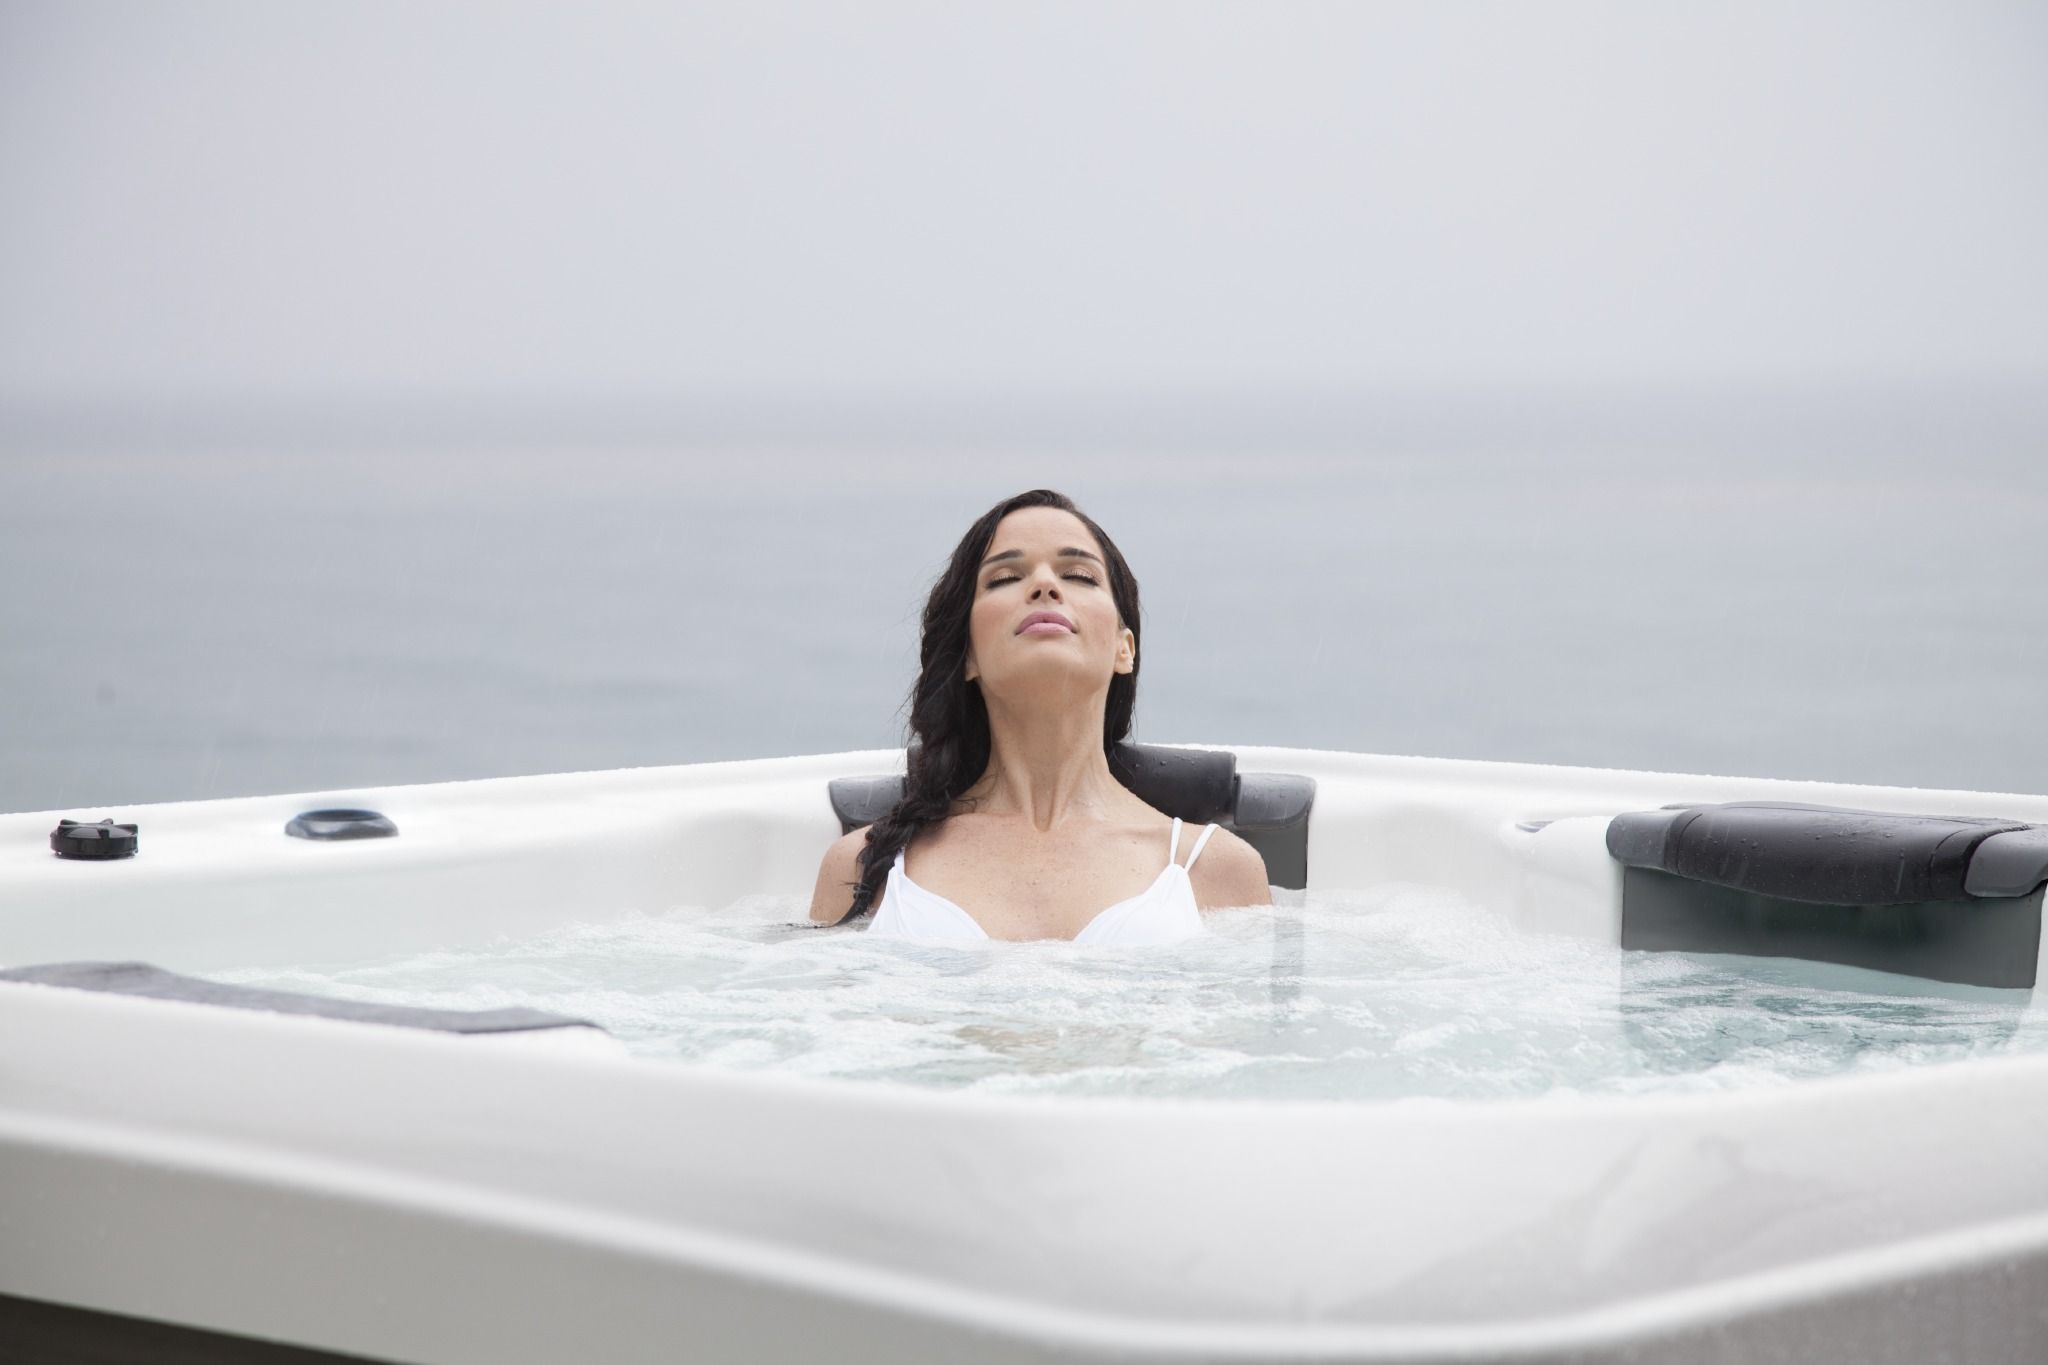 When You Are Enjoying Bullfrog Spas Jetpak Massage Therapy You Don T Spend Much Time Thinking About Spa Hot Tubs Hot Tub Store Environmentally Friendly Design